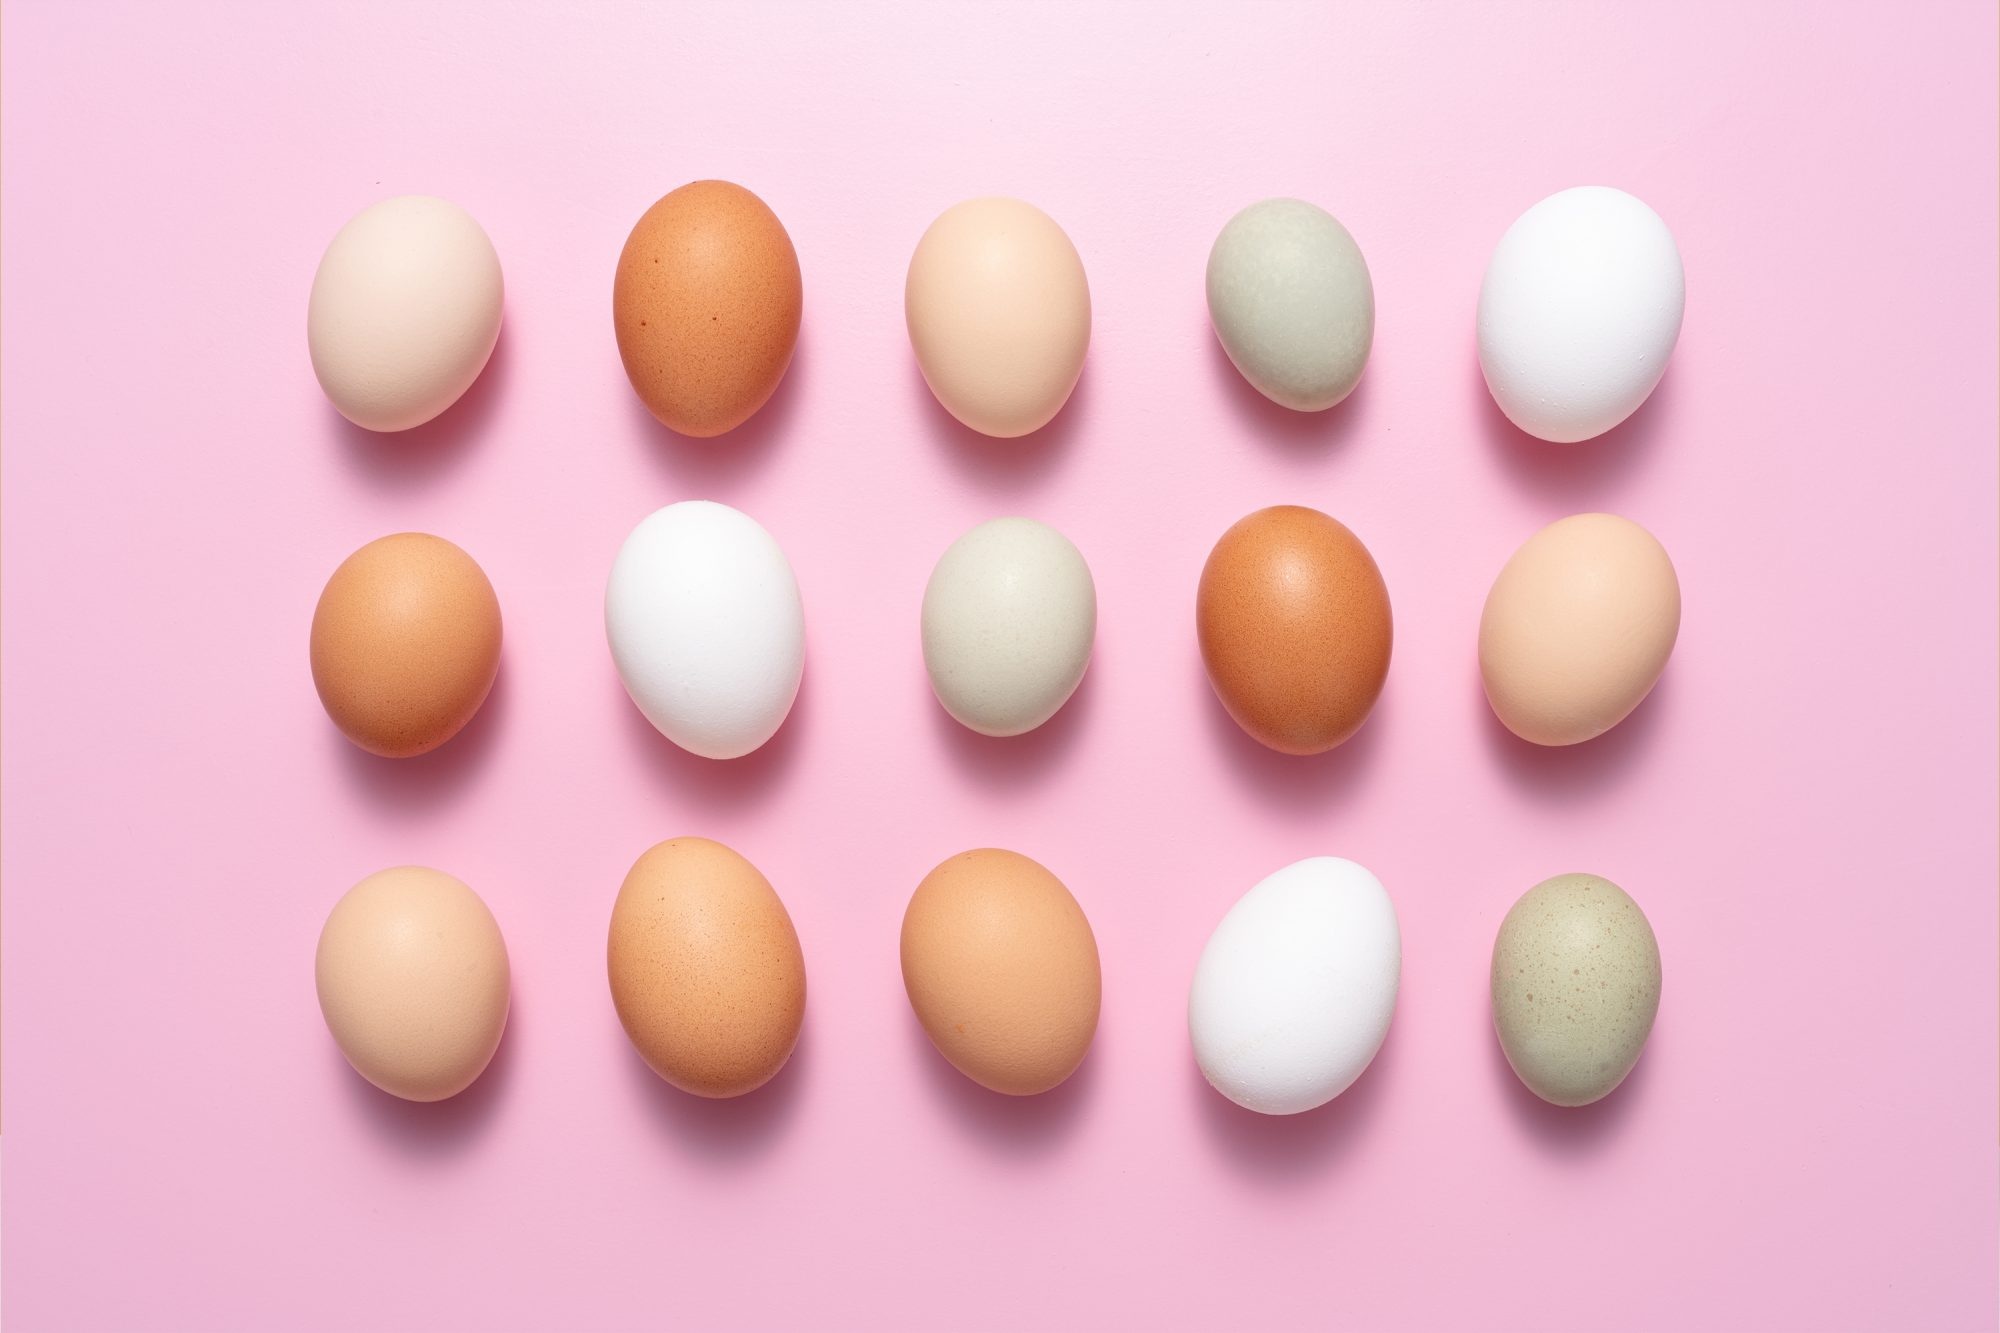 assortment of brown and white eggs